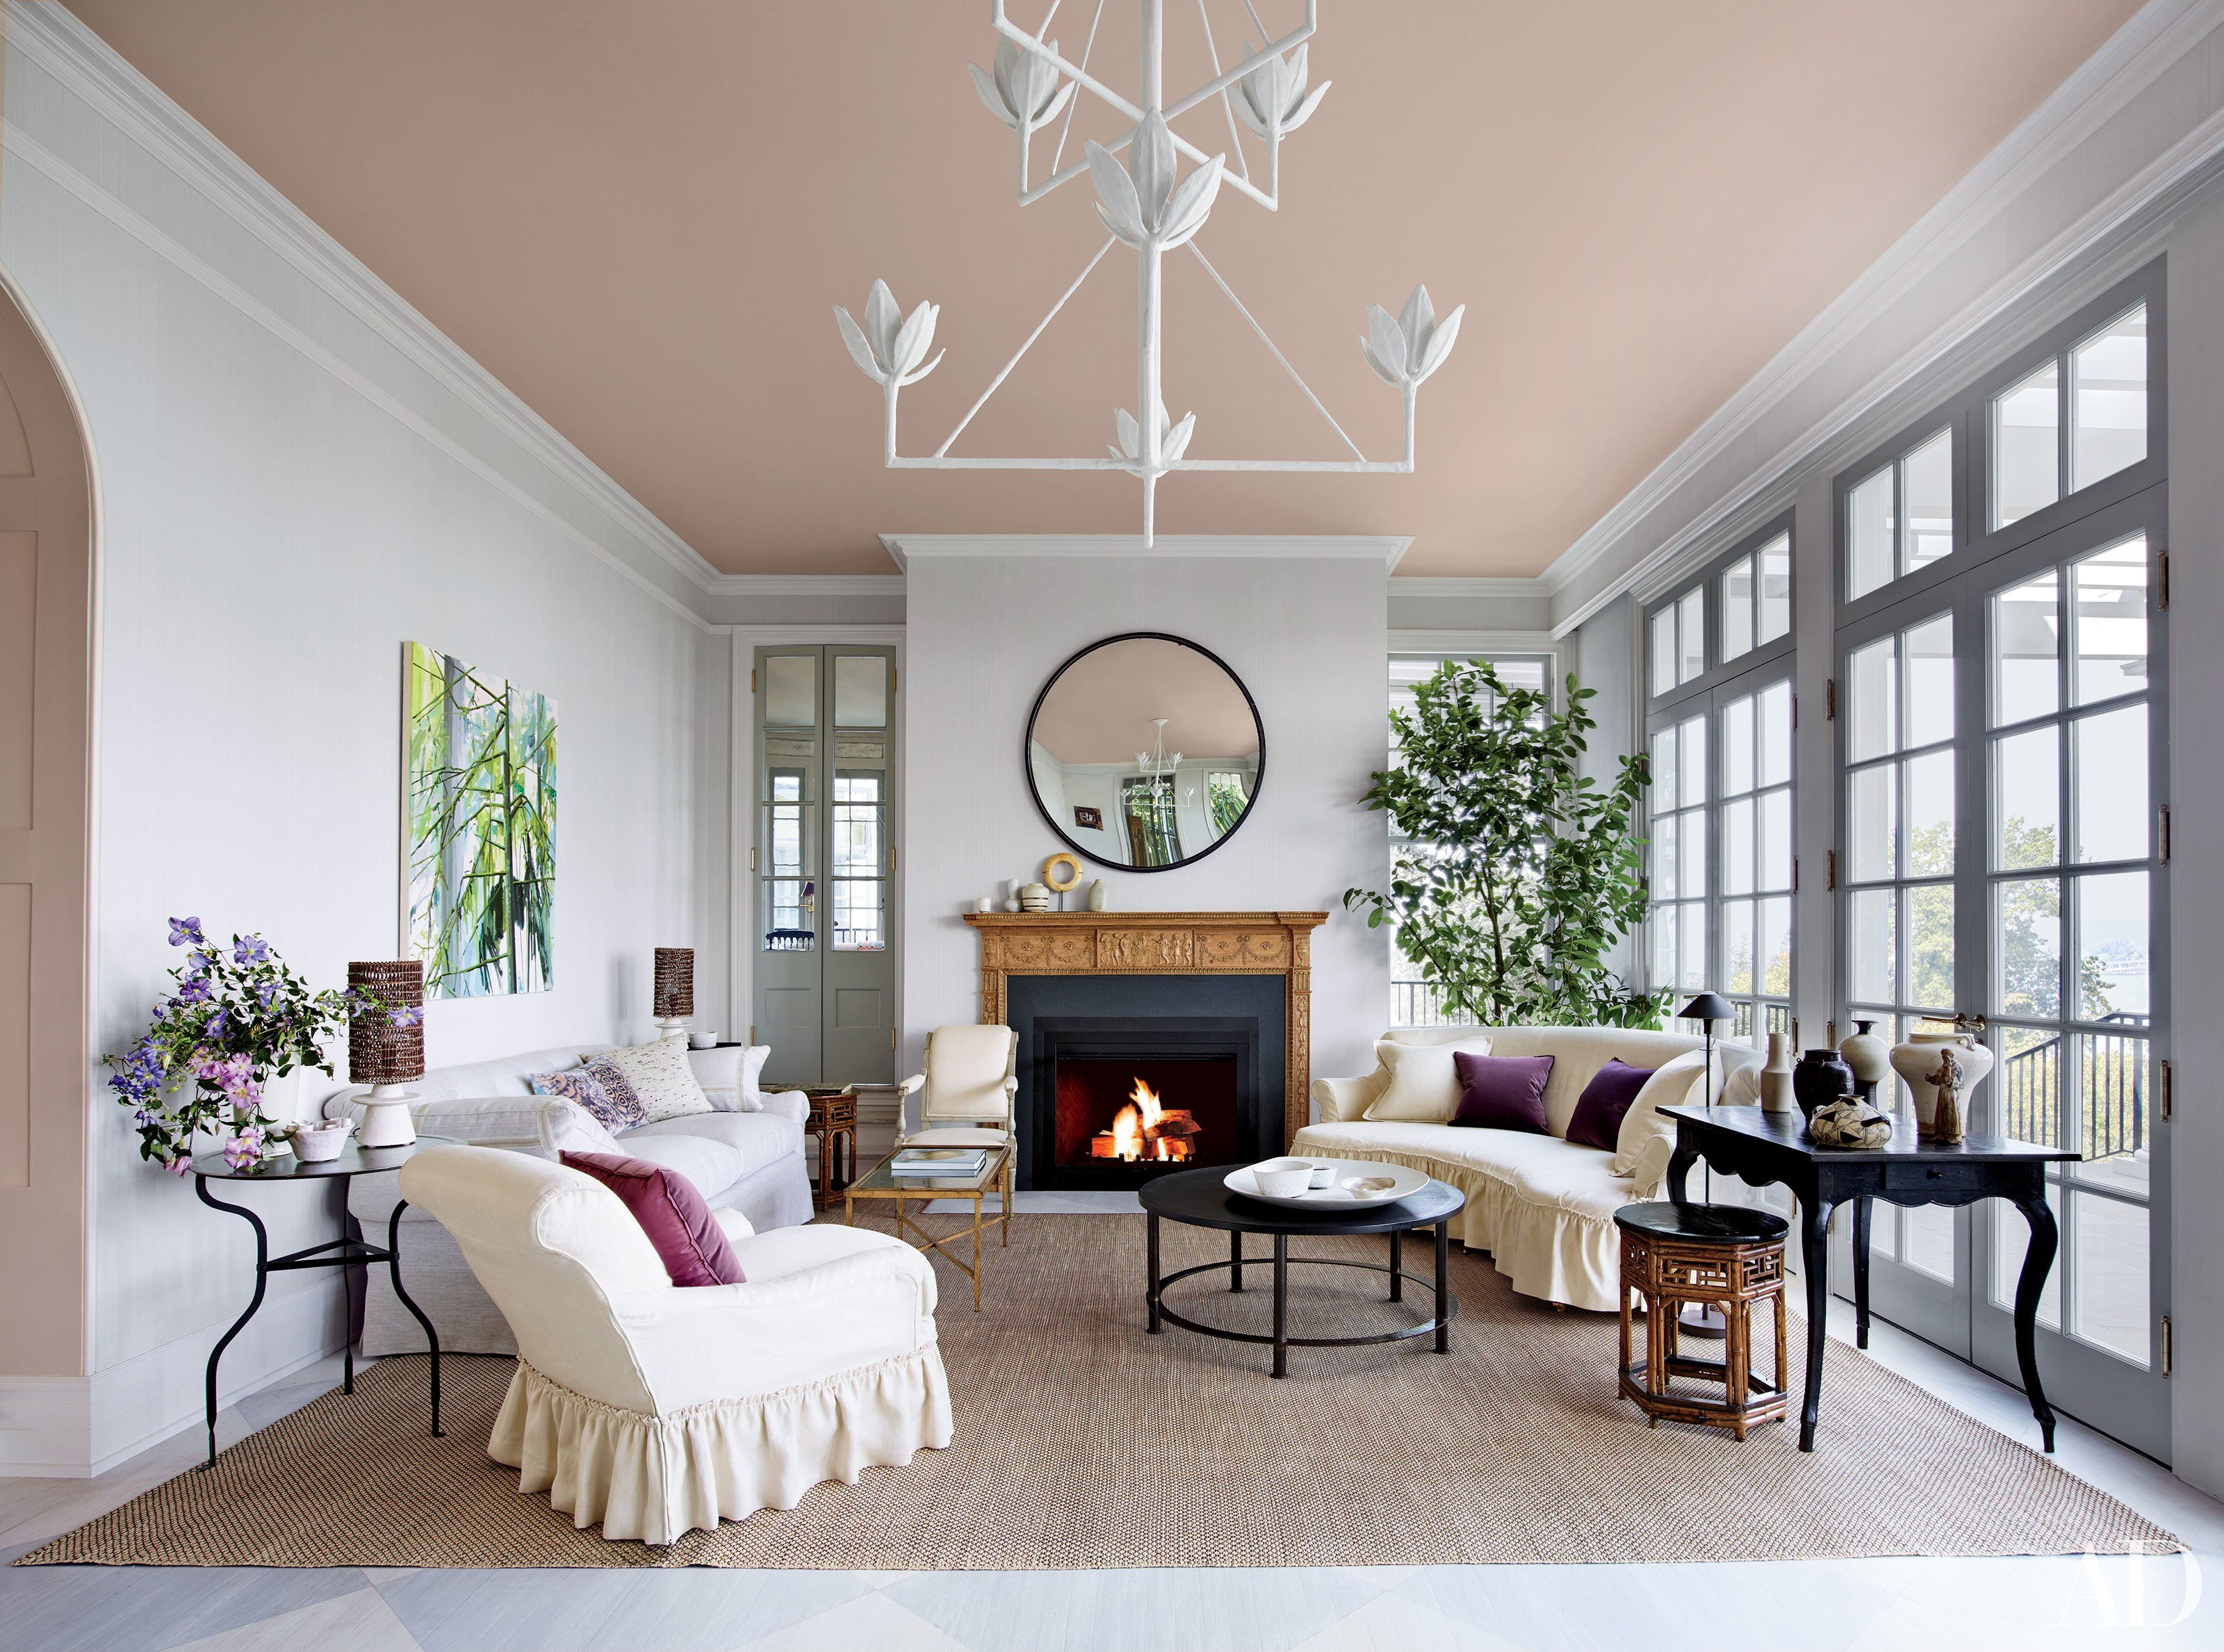 Living Room Decor with Fireplace Fireplace Ideas and Fireplace Designs S